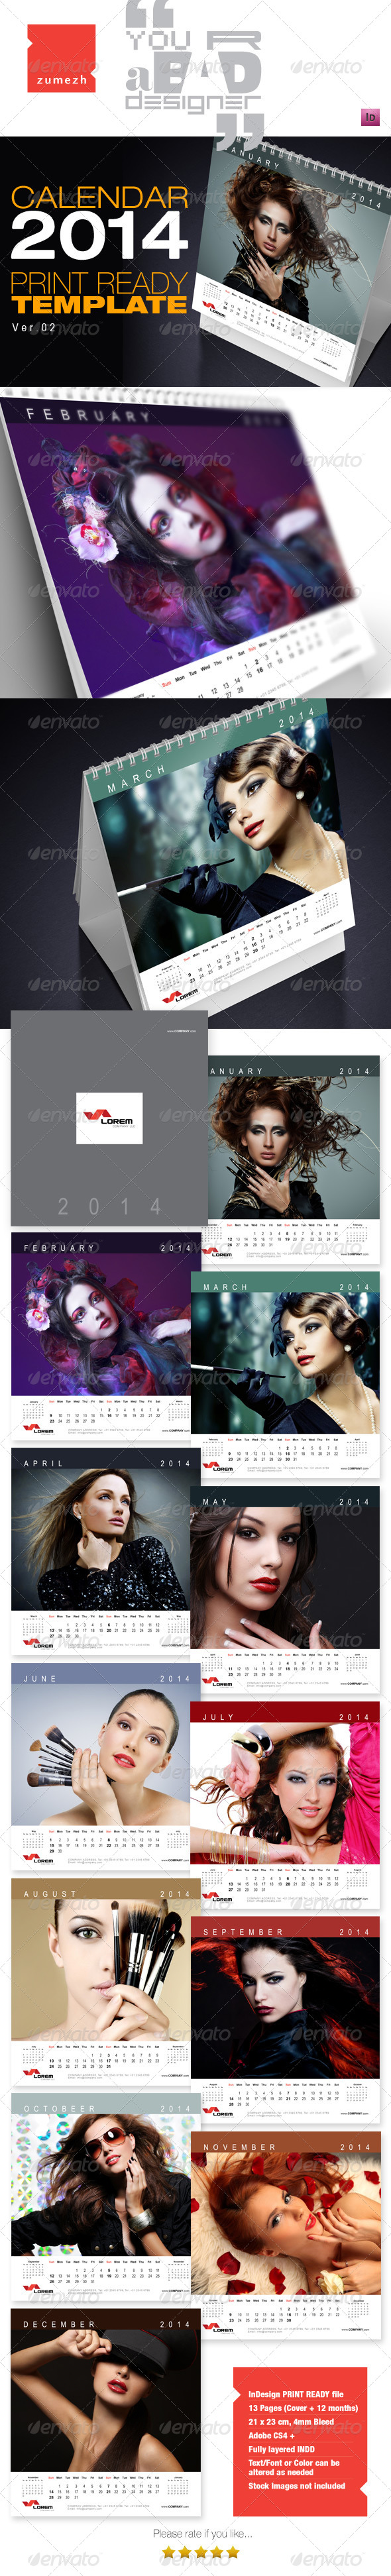 GraphicRiver Desktop Calendar 2014 v2 6276736